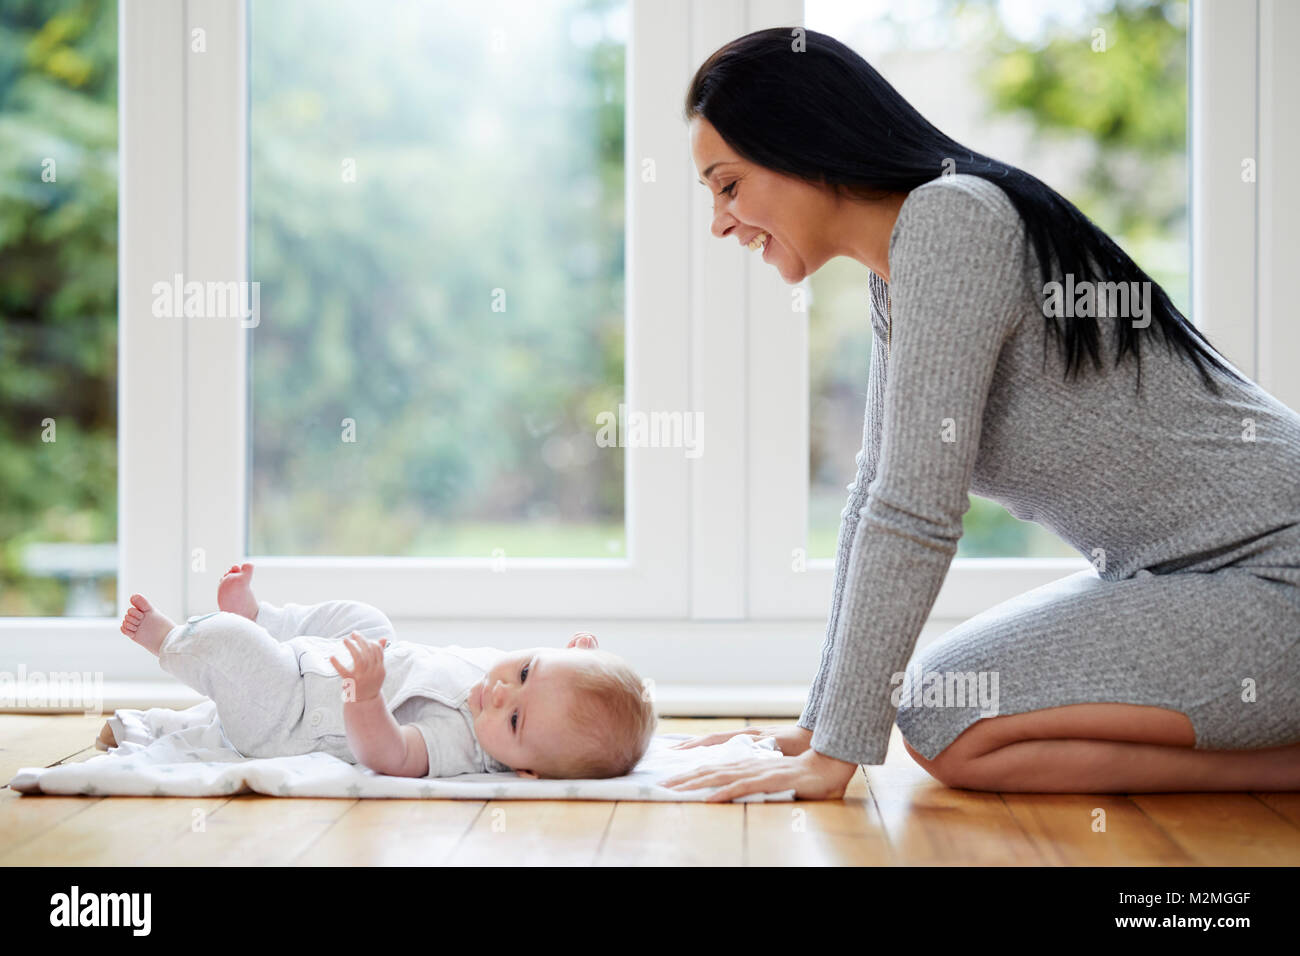 L'interaction de la mère avec son bébé Photo Stock